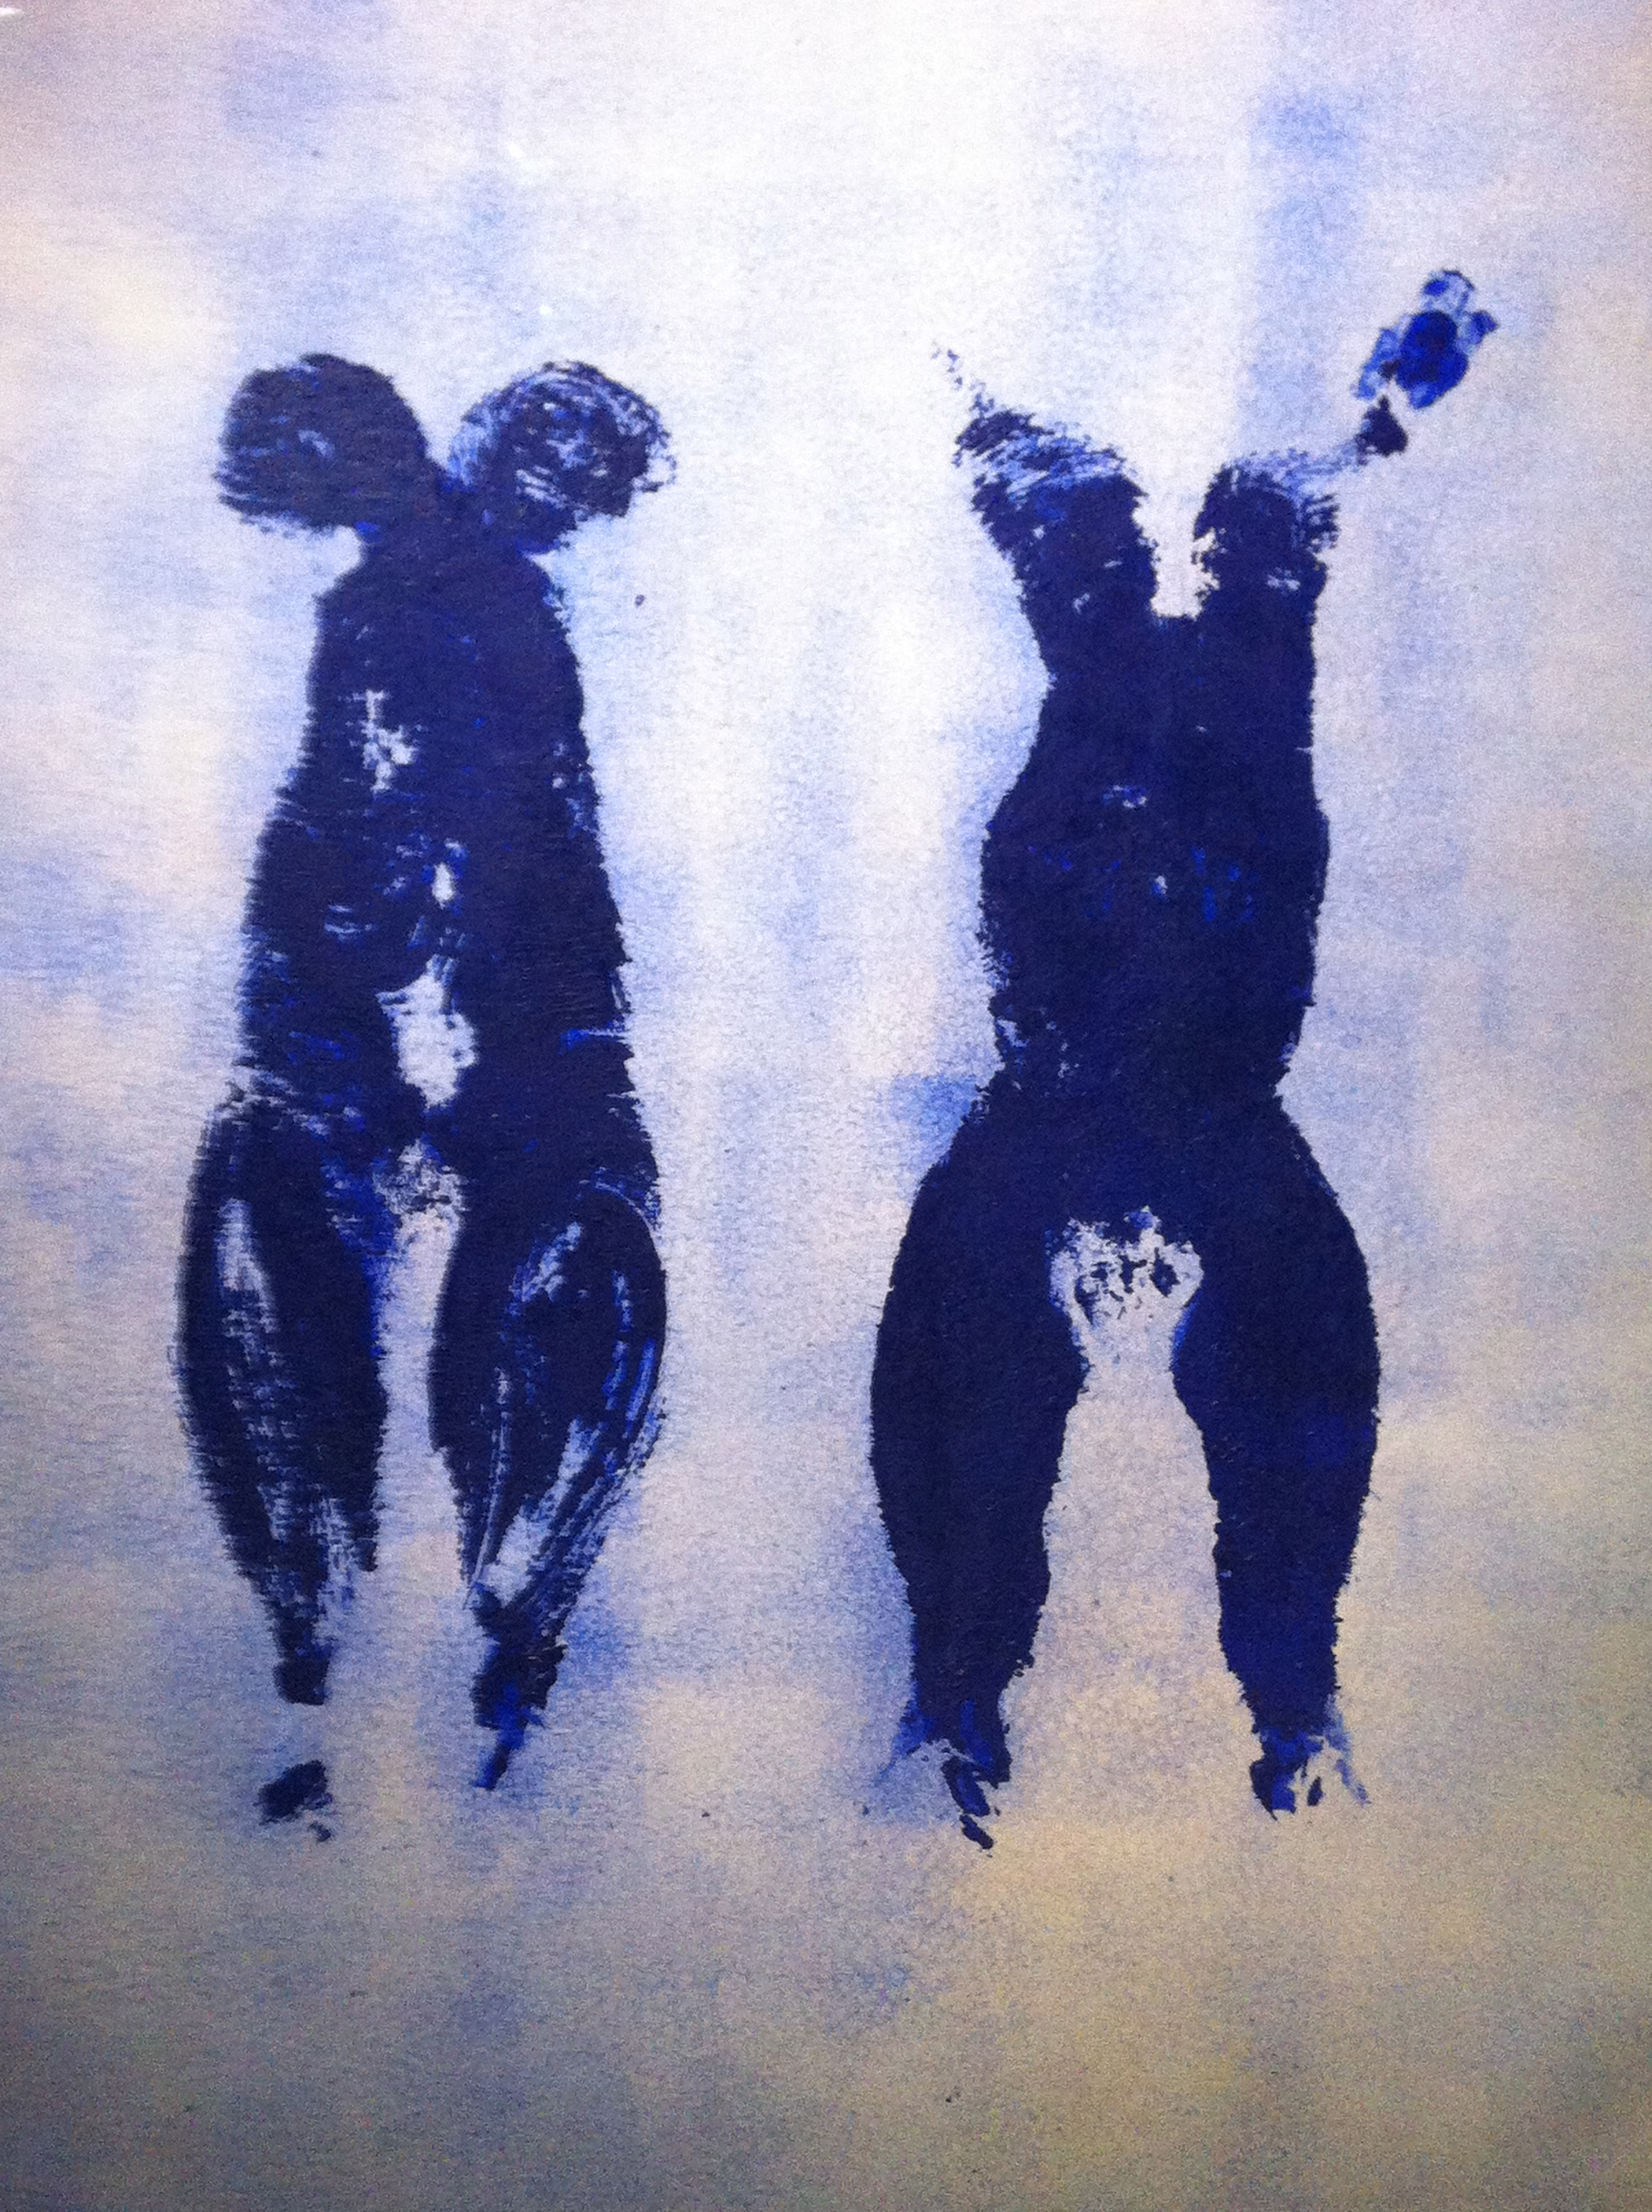 Yves Klein, Anthropométrie (ANT 110), France, Paris, 1960, pigments sur papier marouflé sur toile